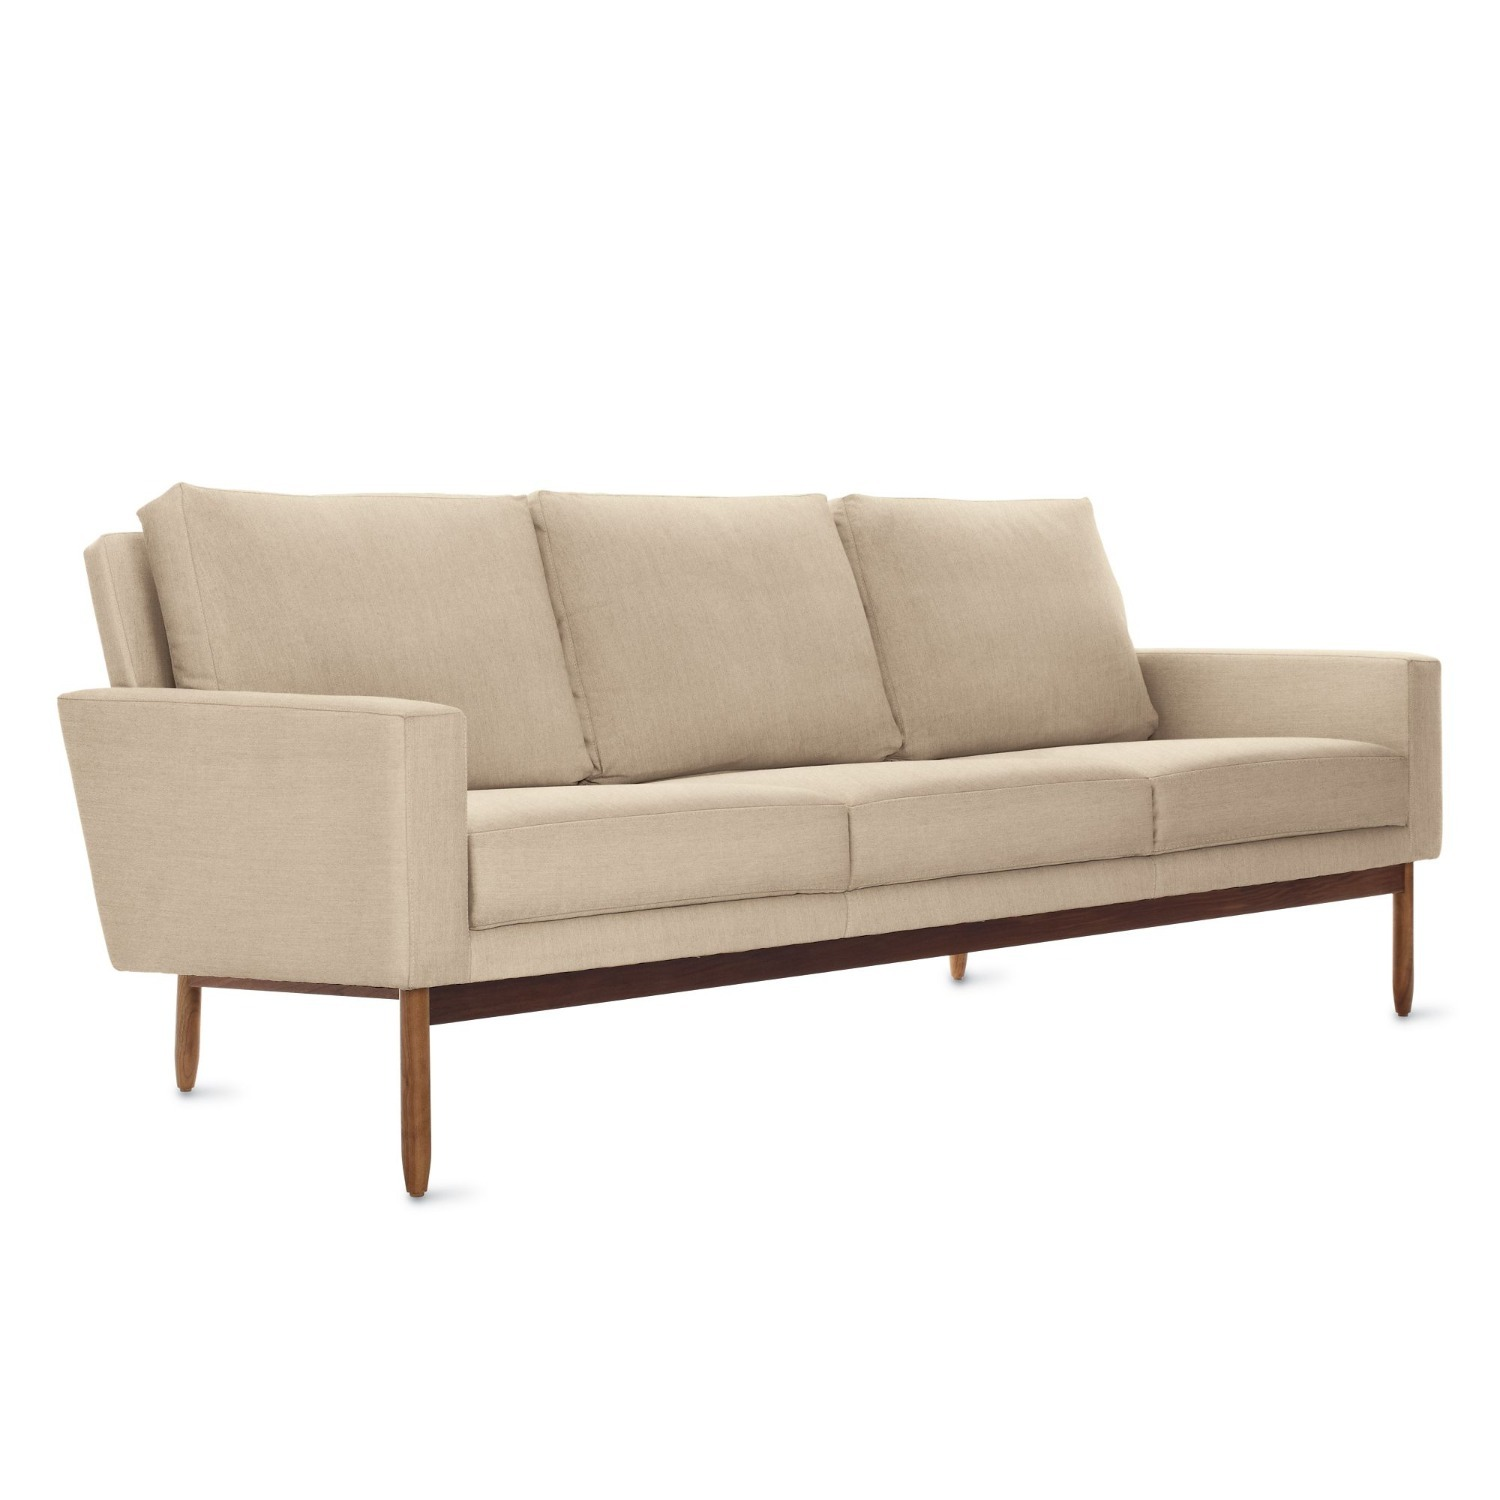 Design Within Reach Raleigh Sofa - image-1